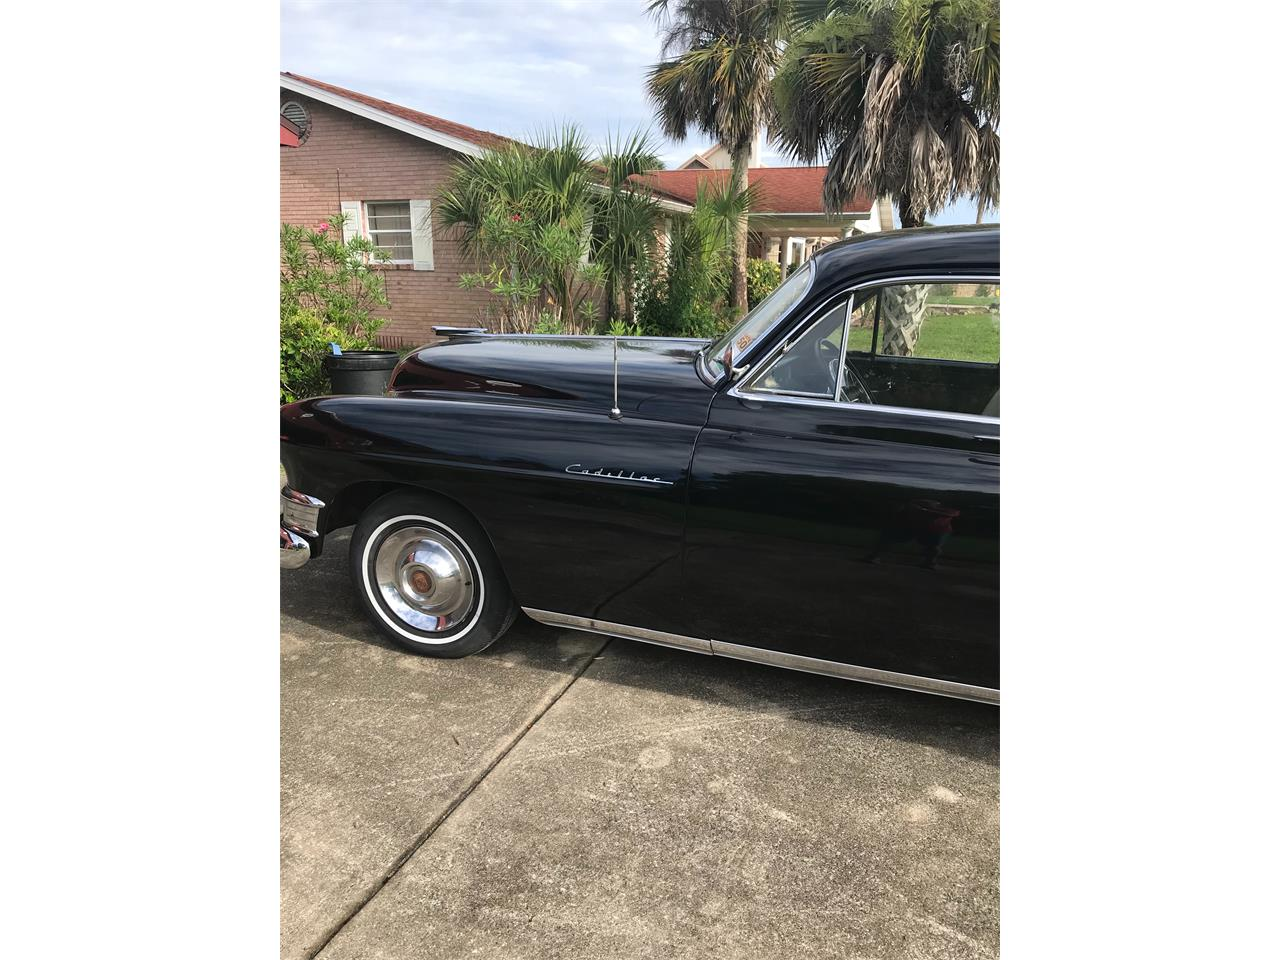 1949 Cadillac 4-Dr Sedan for sale in Land O Lakes, FL – photo 5